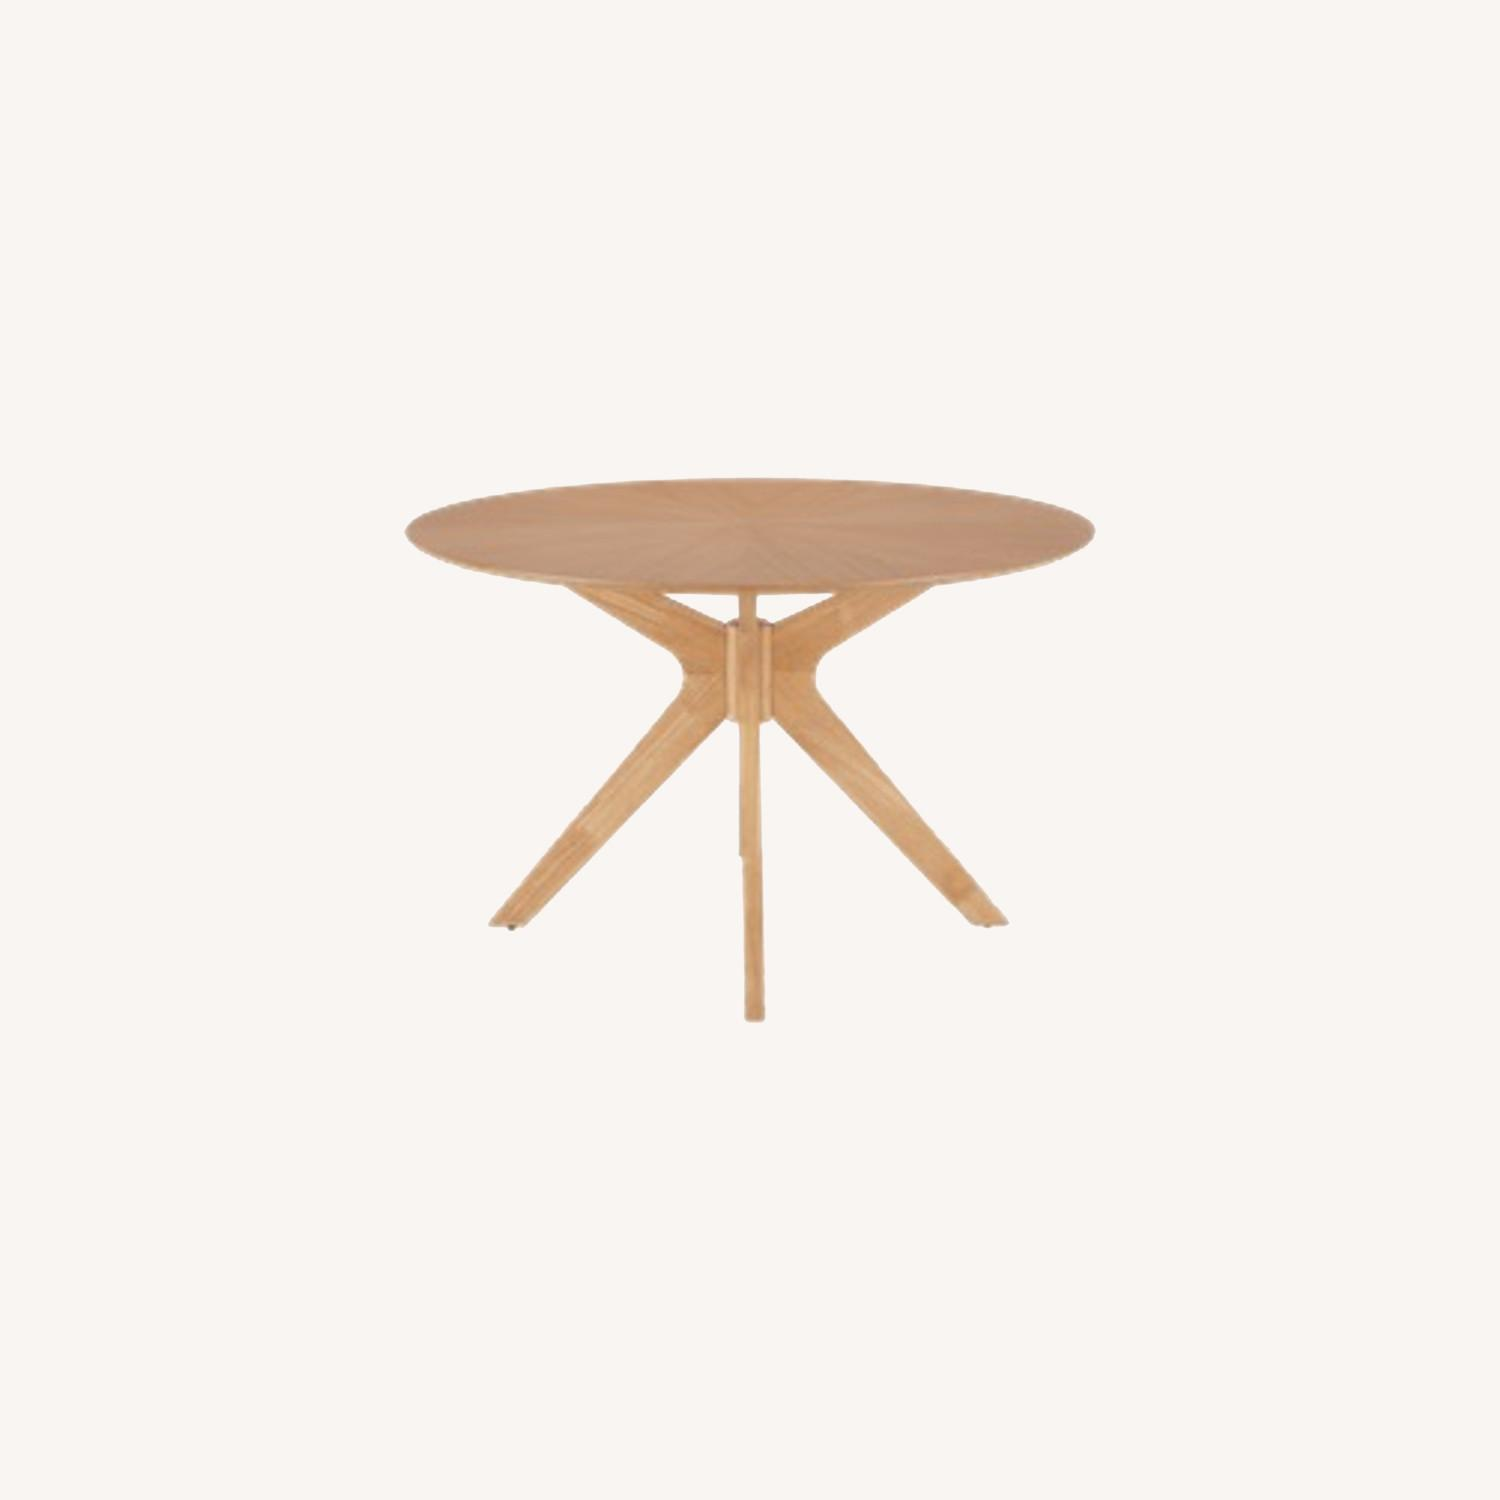 Scandinavian Stlye Dining Table and Chairs - image-6